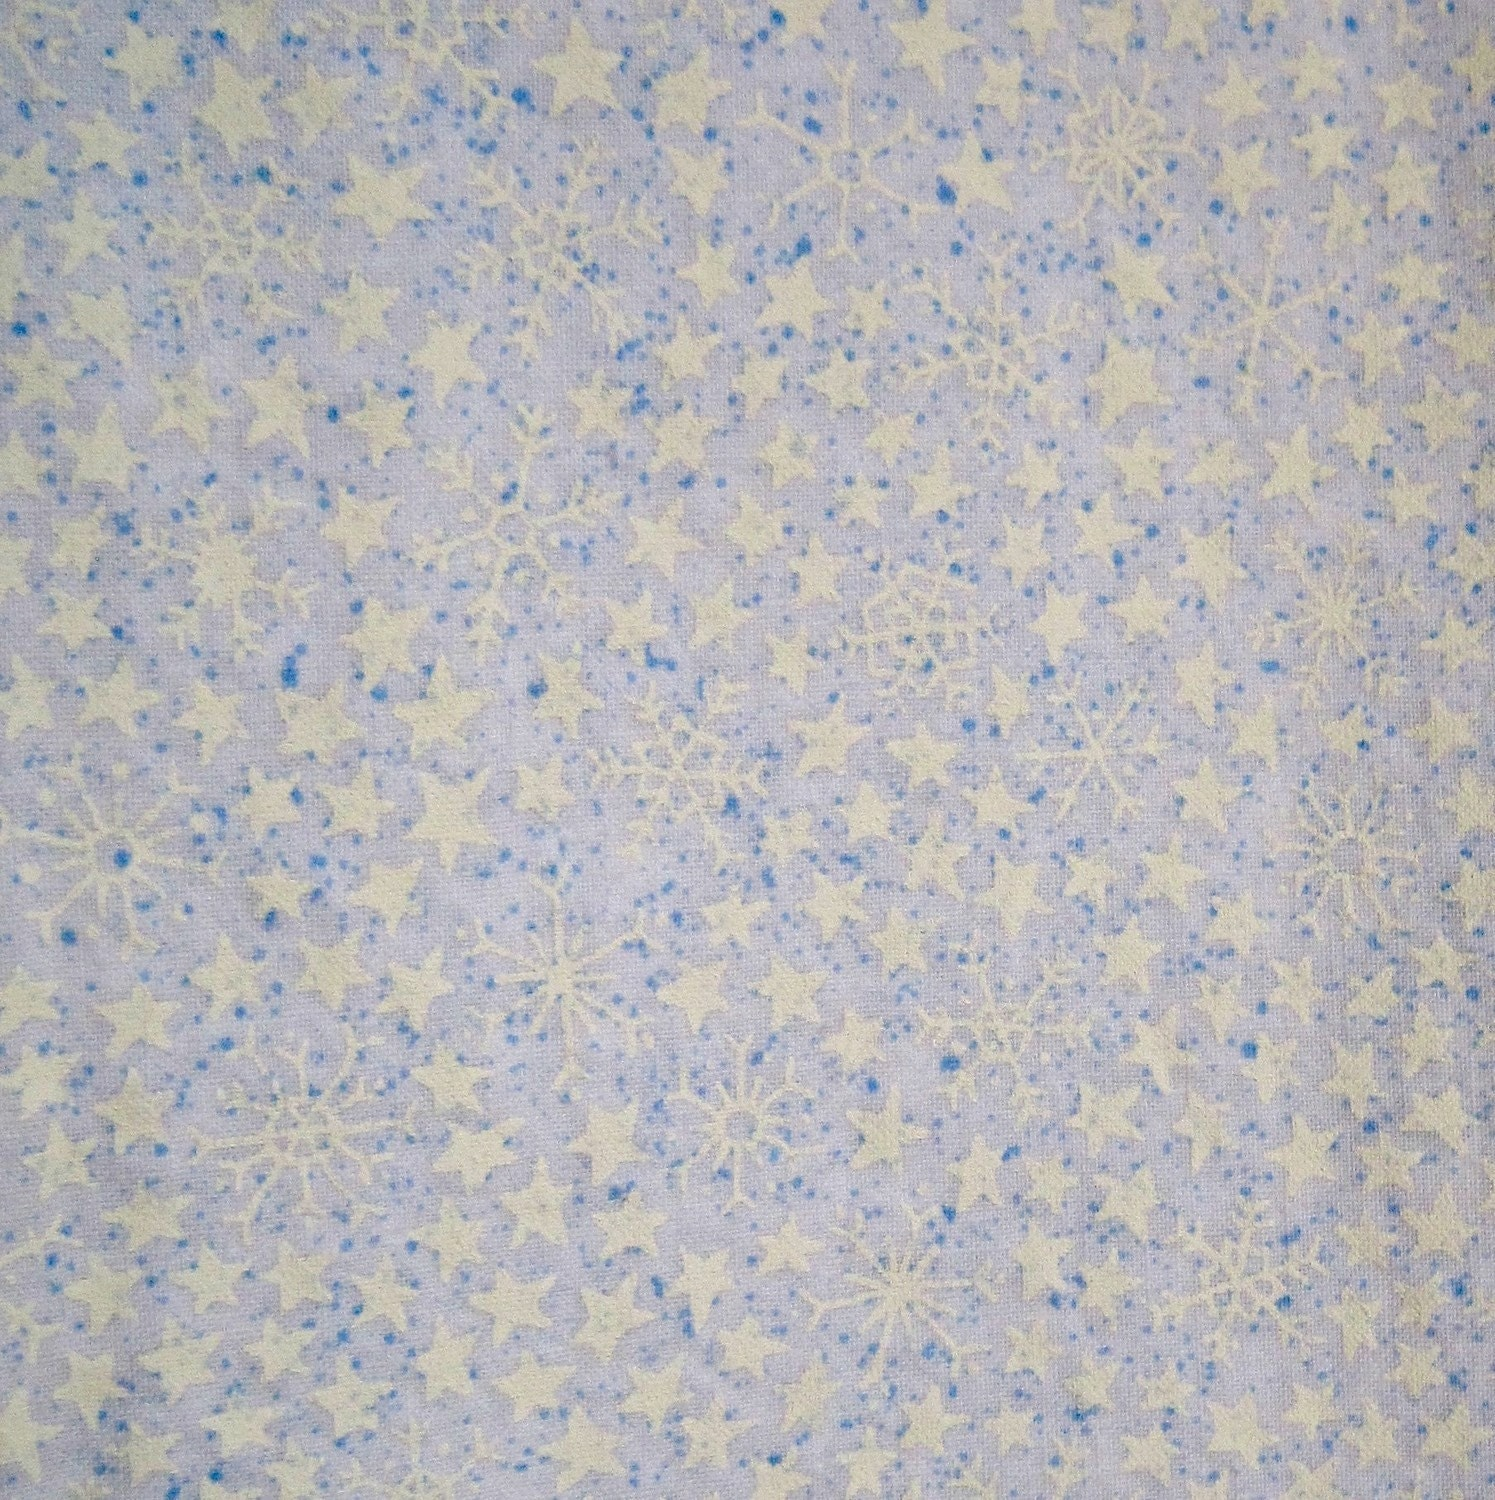 Snowflakes Fabric - Cotton - 1 Yard - Pre-Washed